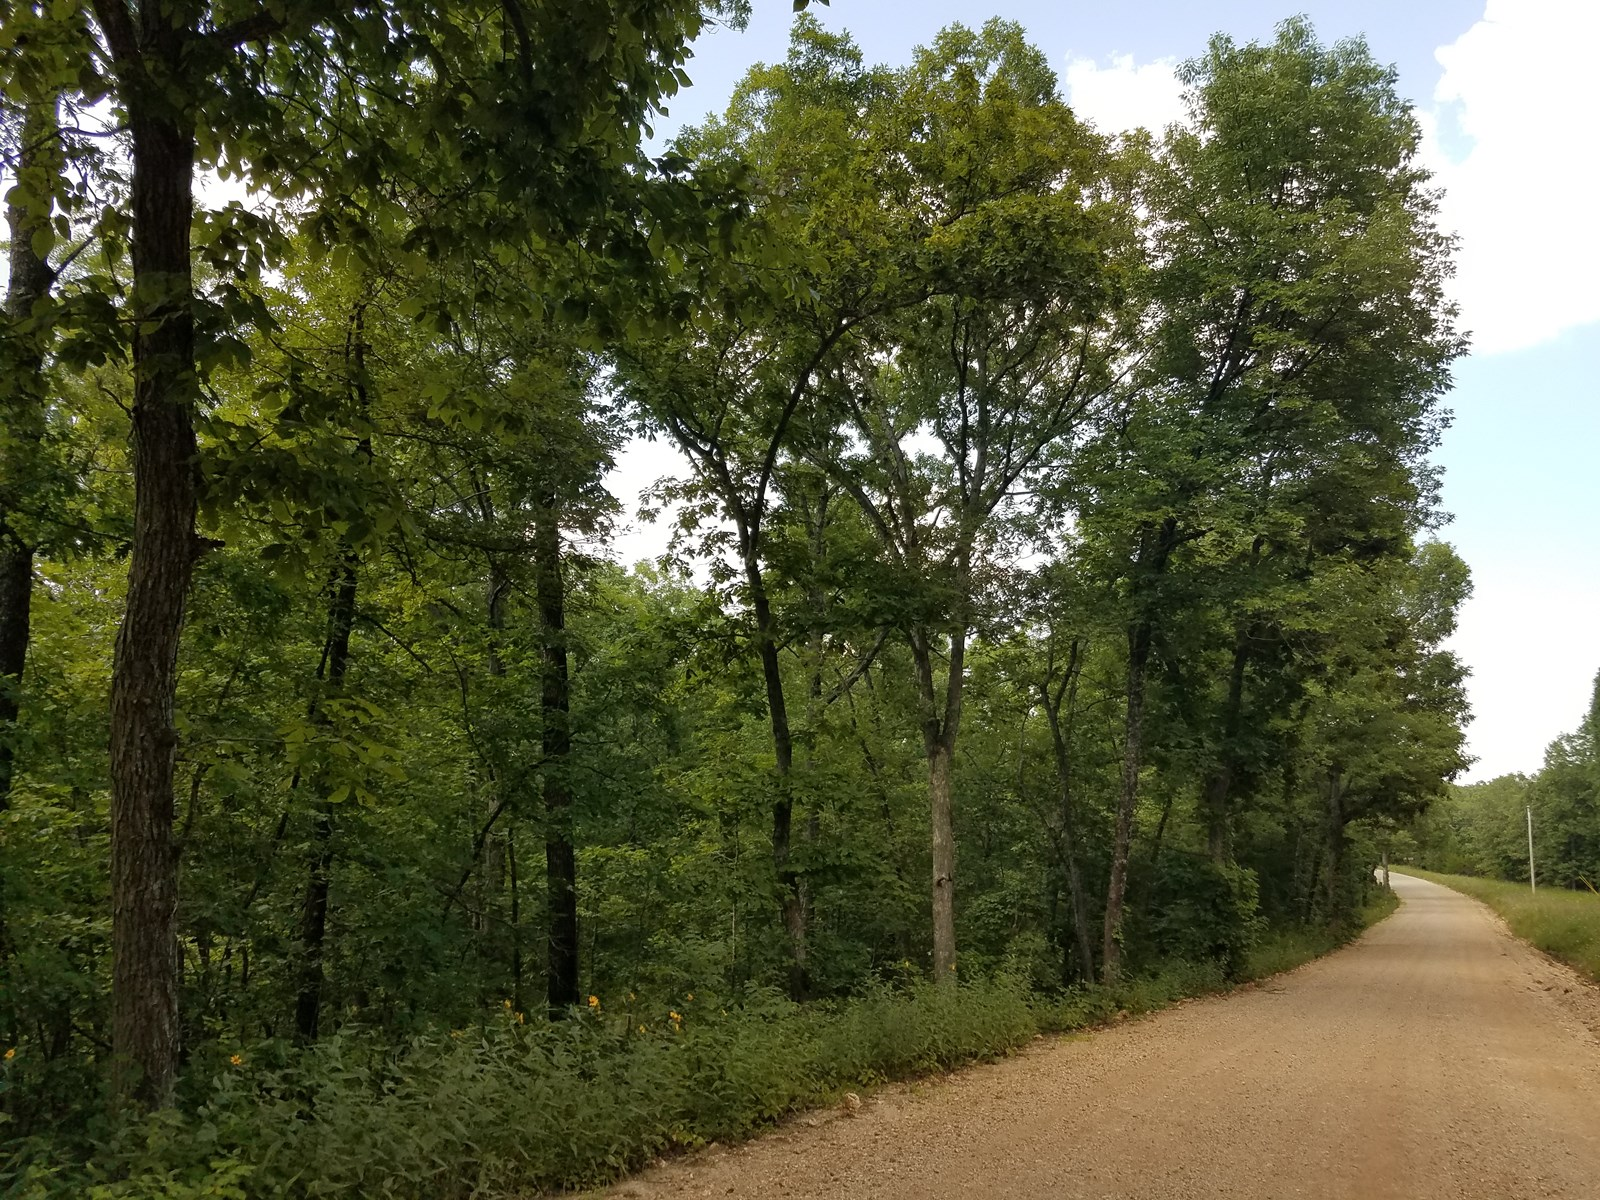 Land at Lake of the Ozarks! 6 Acres Vacant Wooded Land